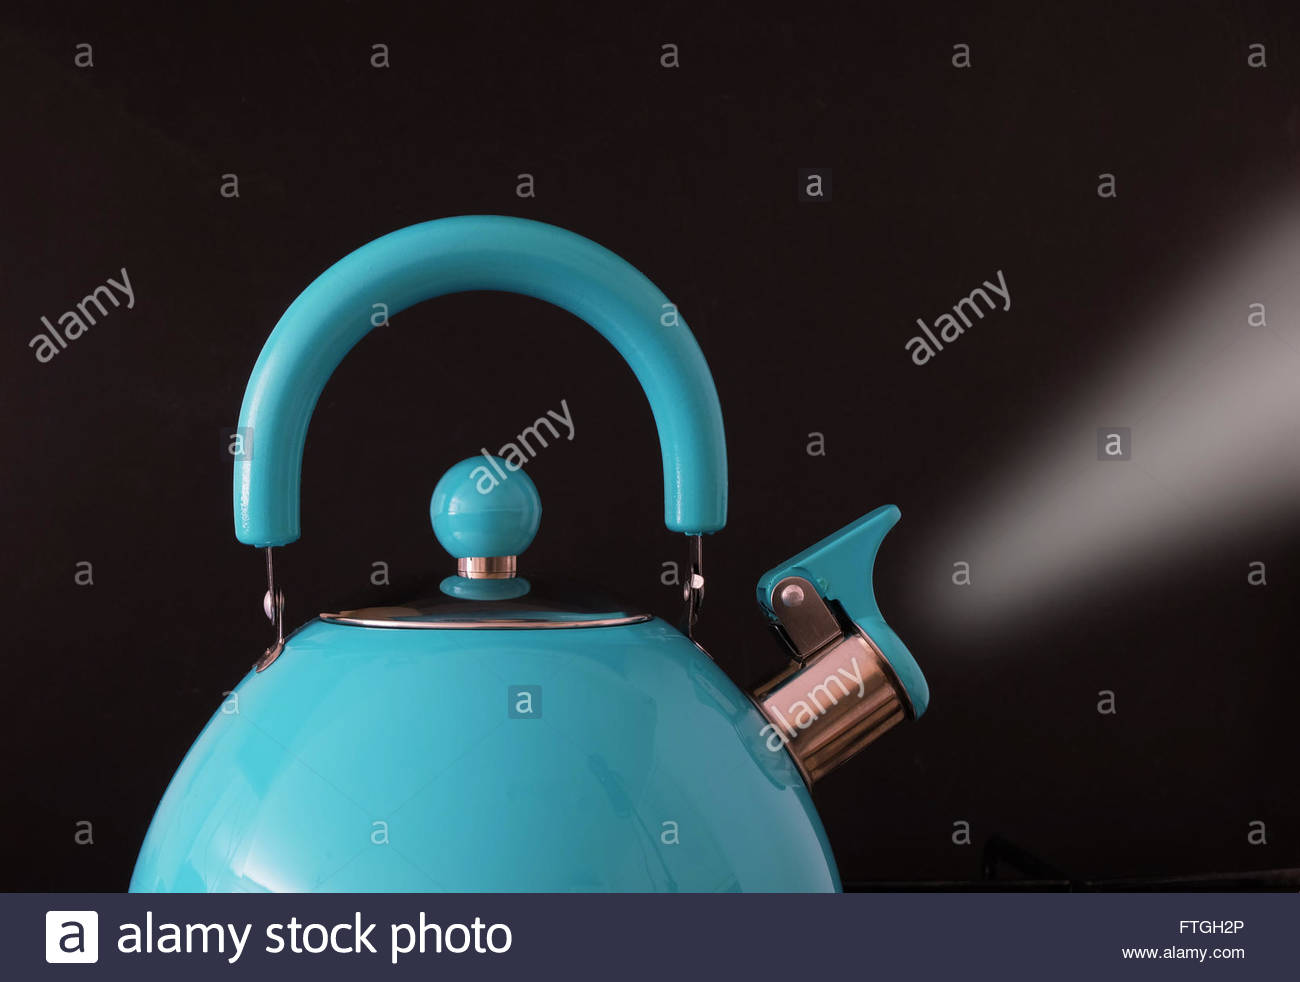 Closeup of boiling kettle steam coming from the spout against black background - Stock Image